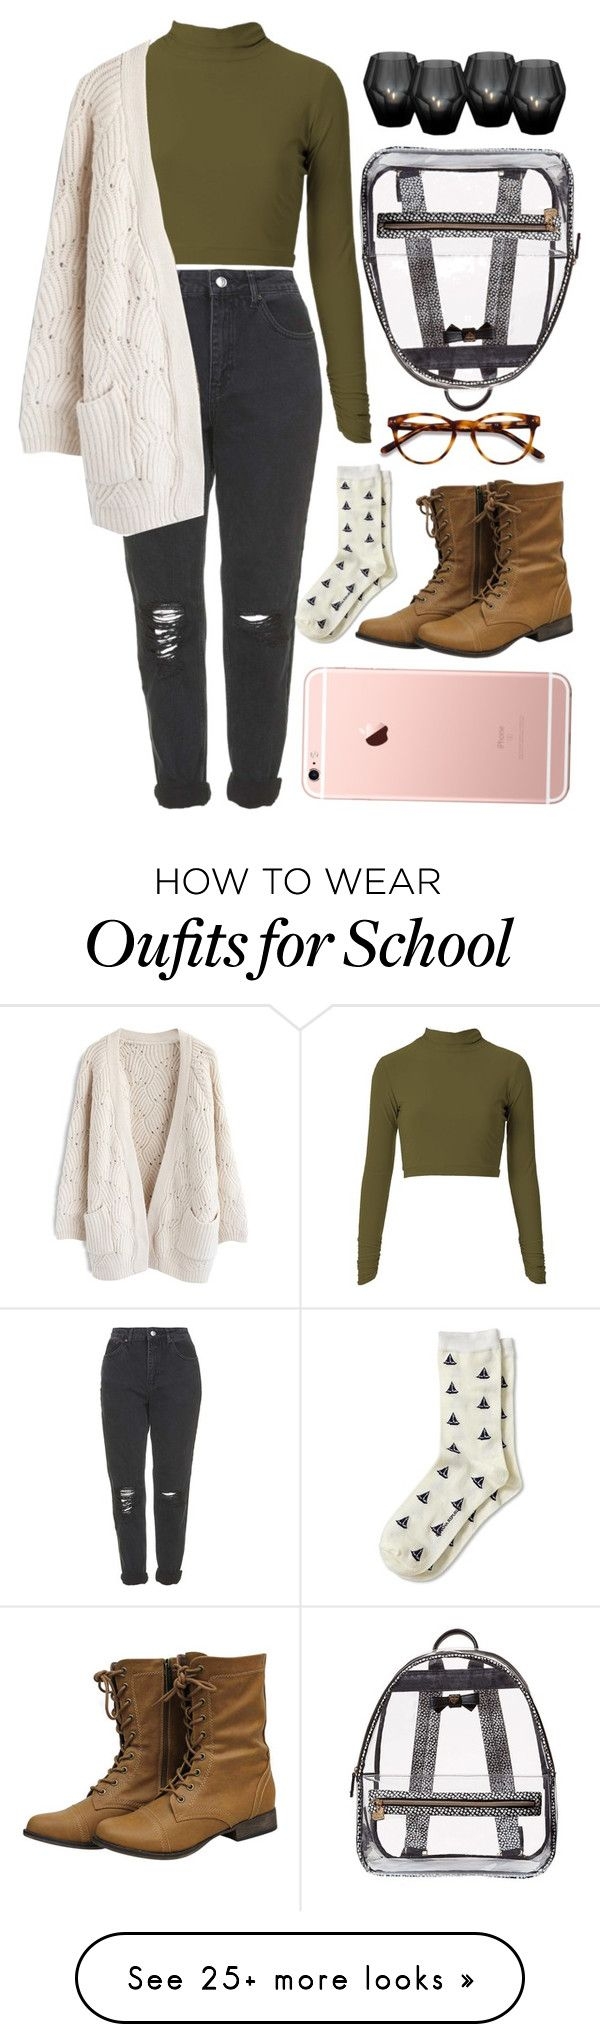 """philosophy maj"" by timeturners on Polyvore featuring Topshop, Chicwish, EyeBuyDirect.com, Banana Republic, Betsey Johnson and Eichholtz"